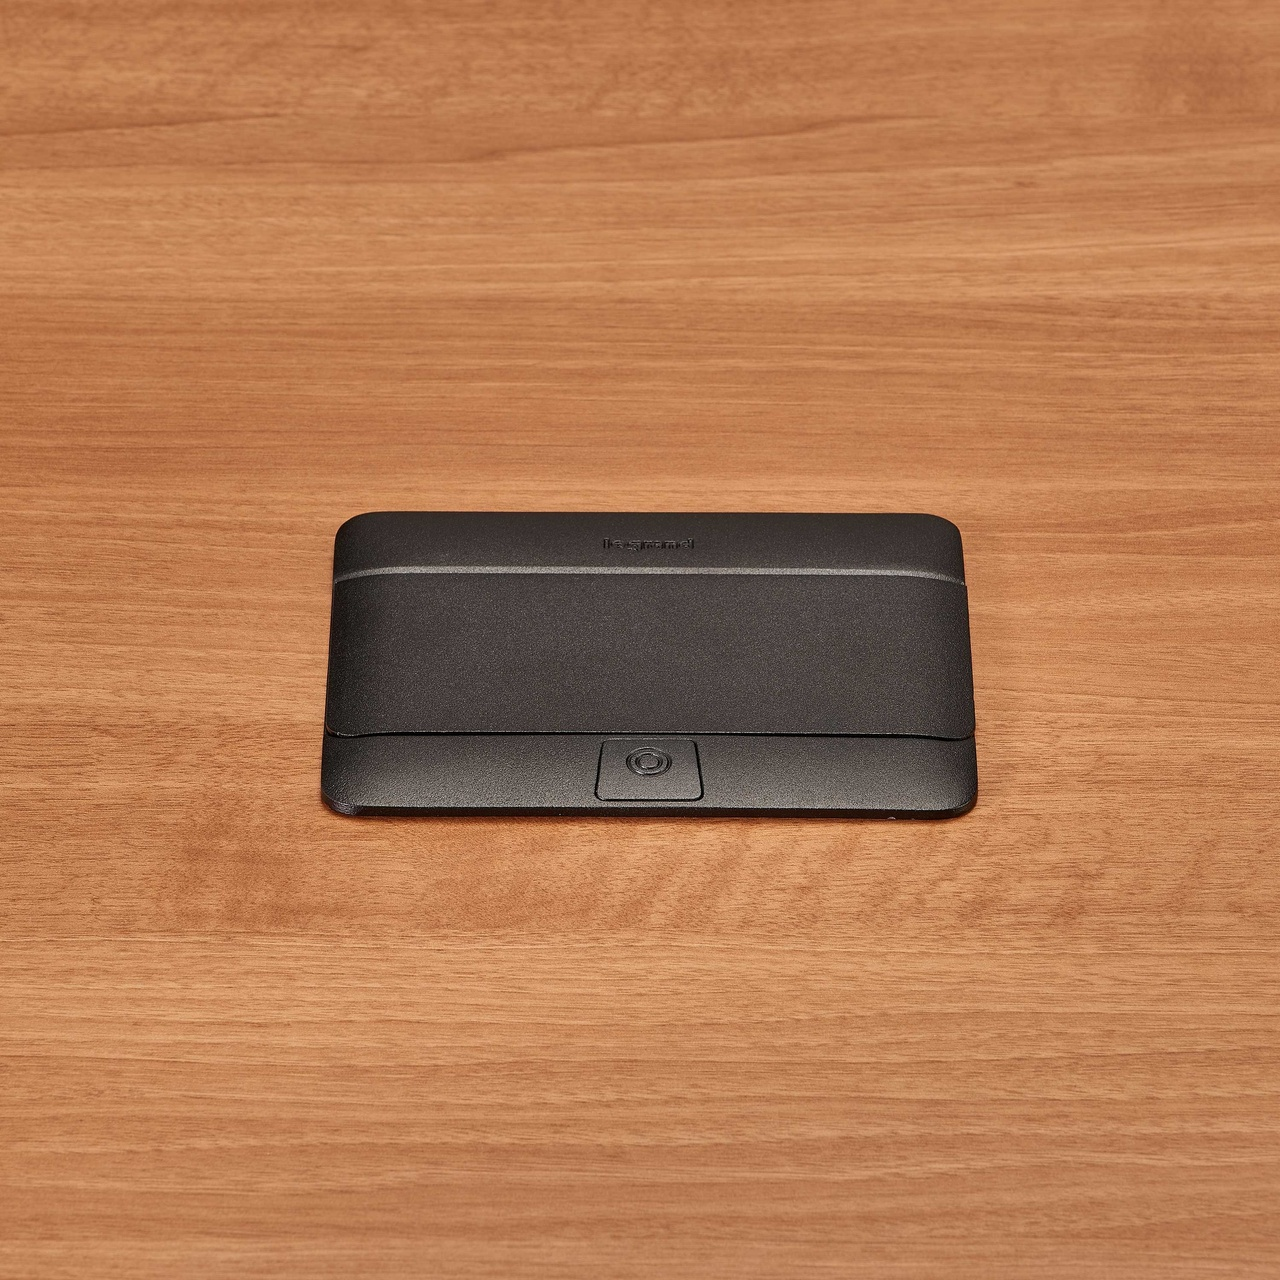 deQuorum Flip-Up Table Box 1-Gang 20A recep 3.1A USB, black finish-closed view, DQFP20UBK